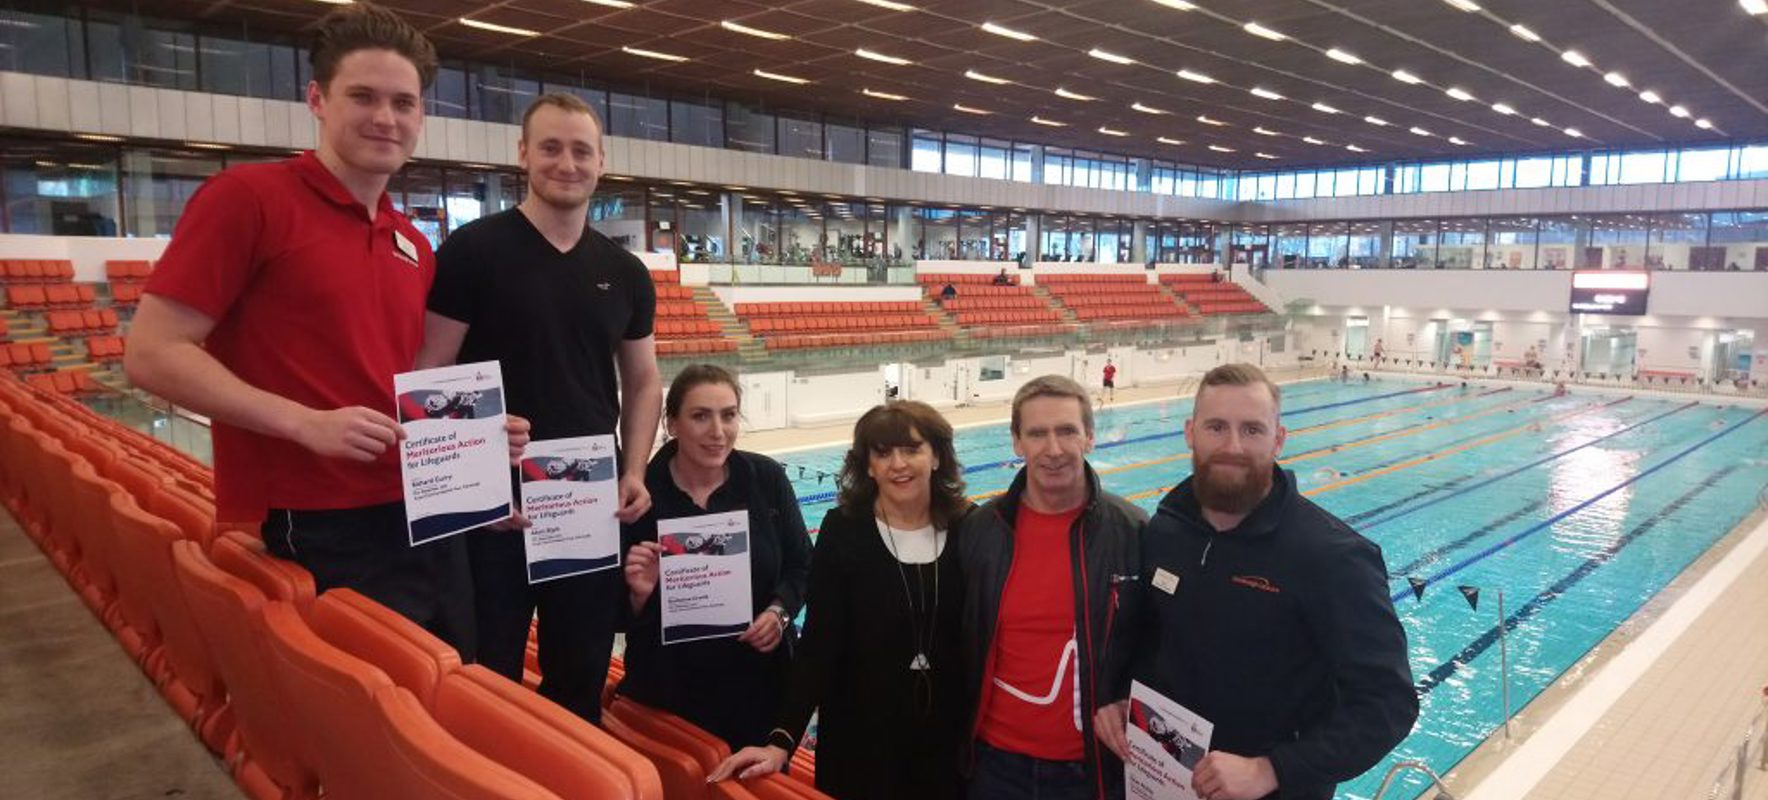 Edinburgh Leisure staff awarded highest accolade after saving customer's life